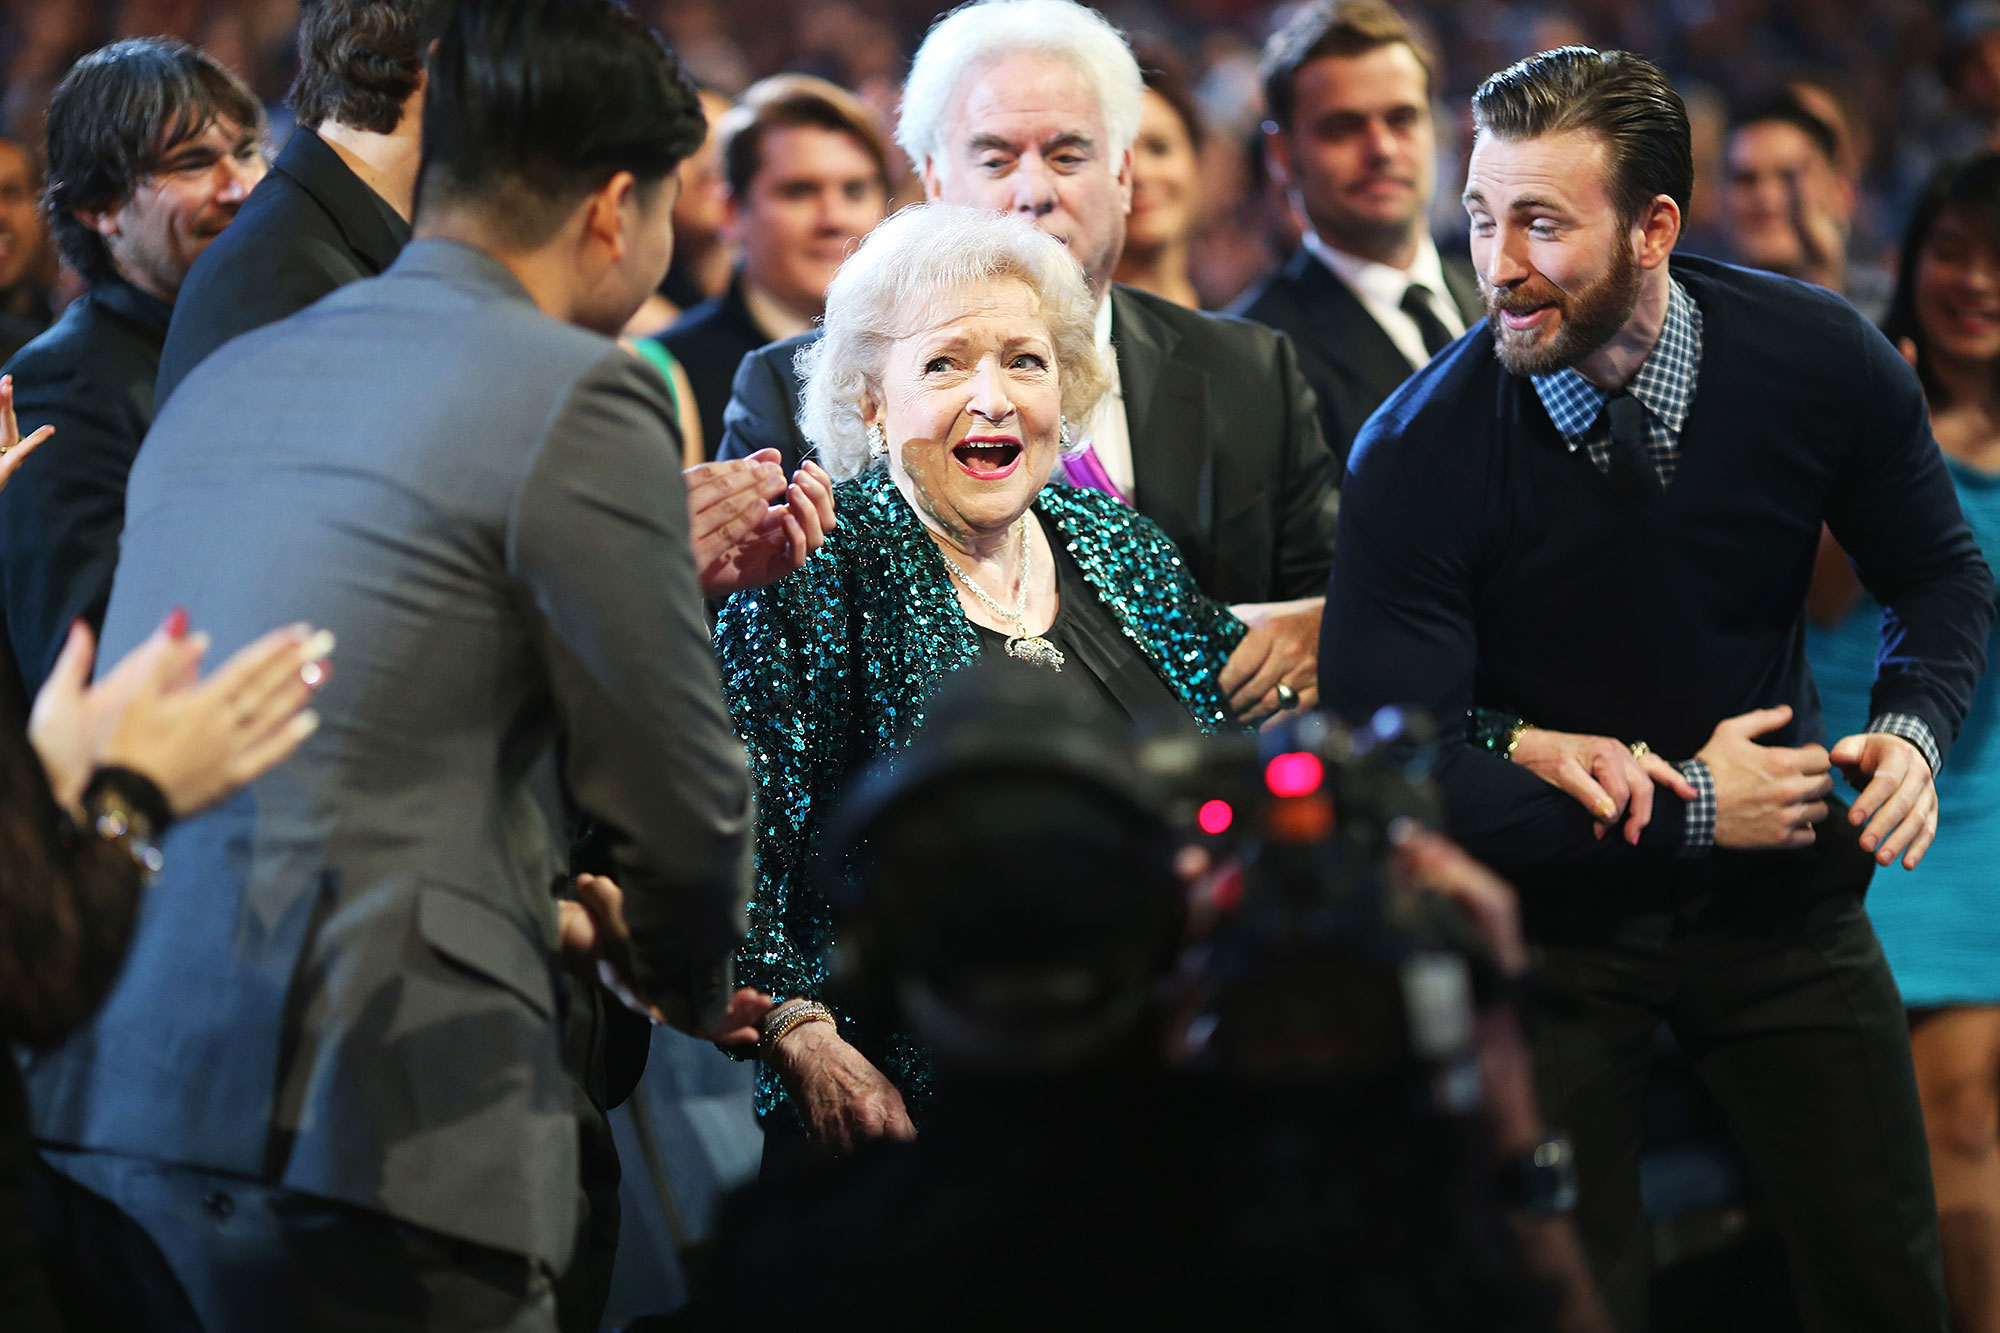 Awards Shows Audience Reactions Betty White Chris Evans Peoples Choice Awards 2015 - The legendary comedian looked too cute after Chris Evans offered to help her to the stage at the 2015 People's Choice Awards.